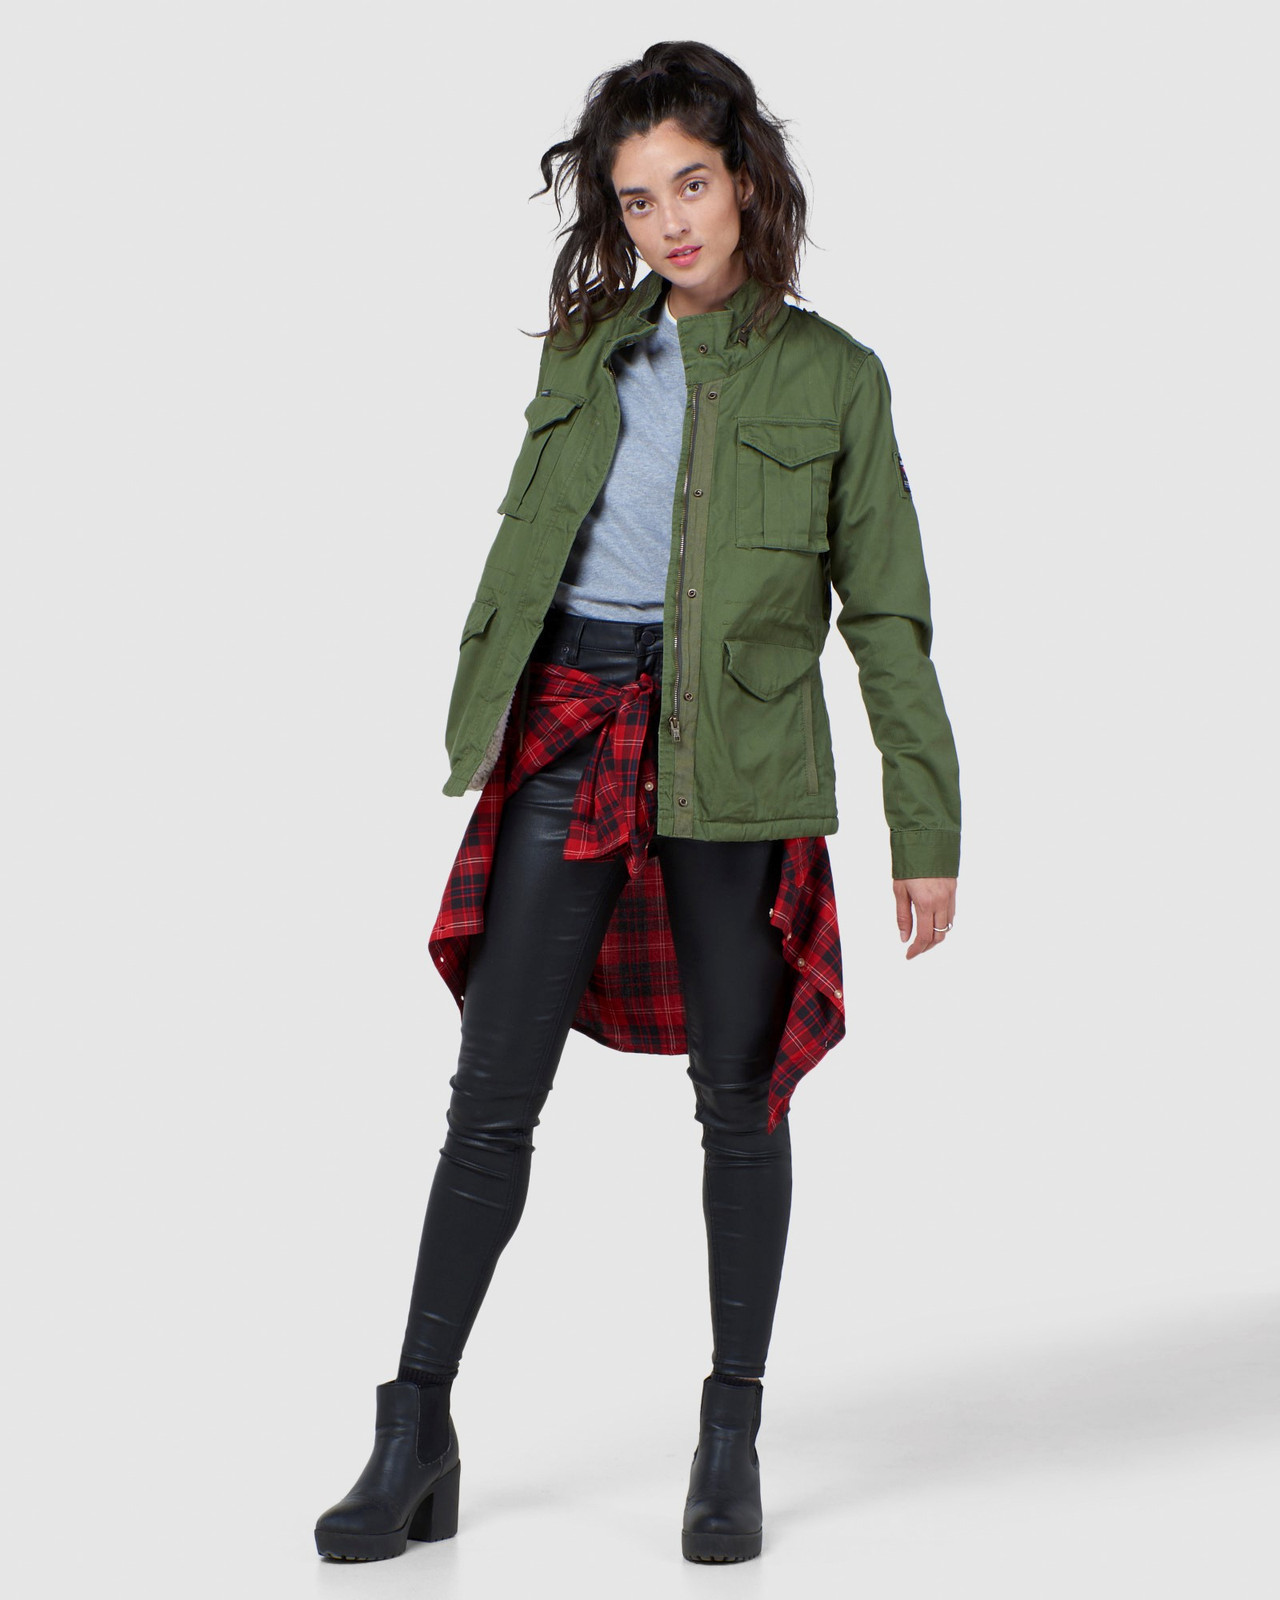 Superdry Womens CLASSIC RECRUIT BORG JACKET Green Military Jackets 1